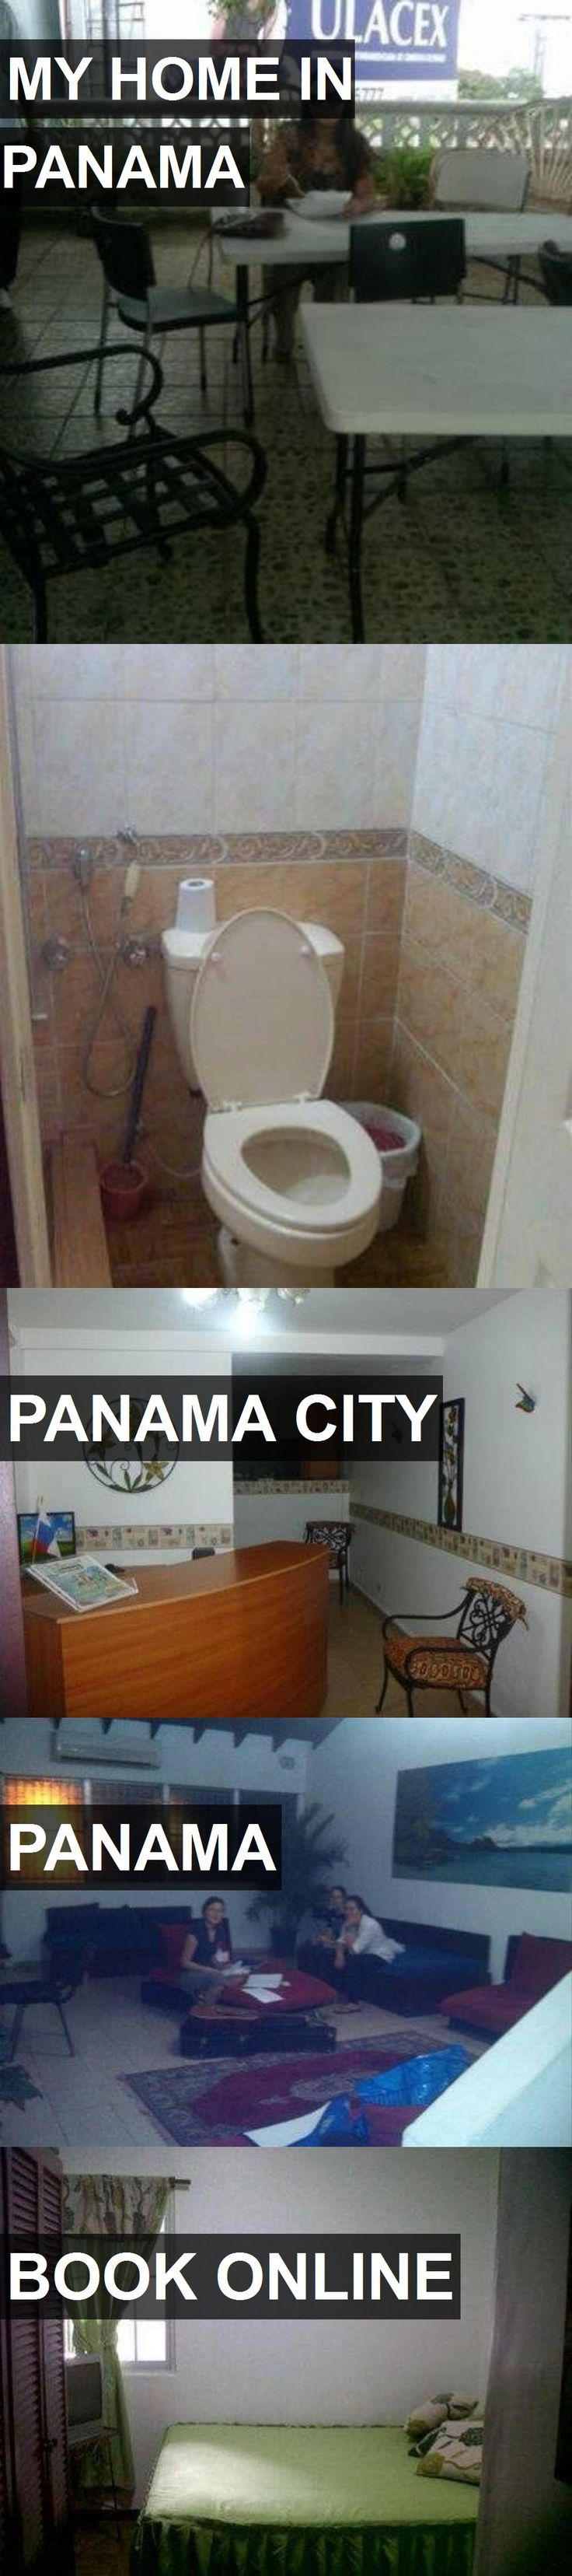 Hotel MY HOME IN PANAMA in Panama City, Panama. For more information, photos, reviews and best prices please follow the link. #Panama #PanamaCity #travel #vacation #hotel